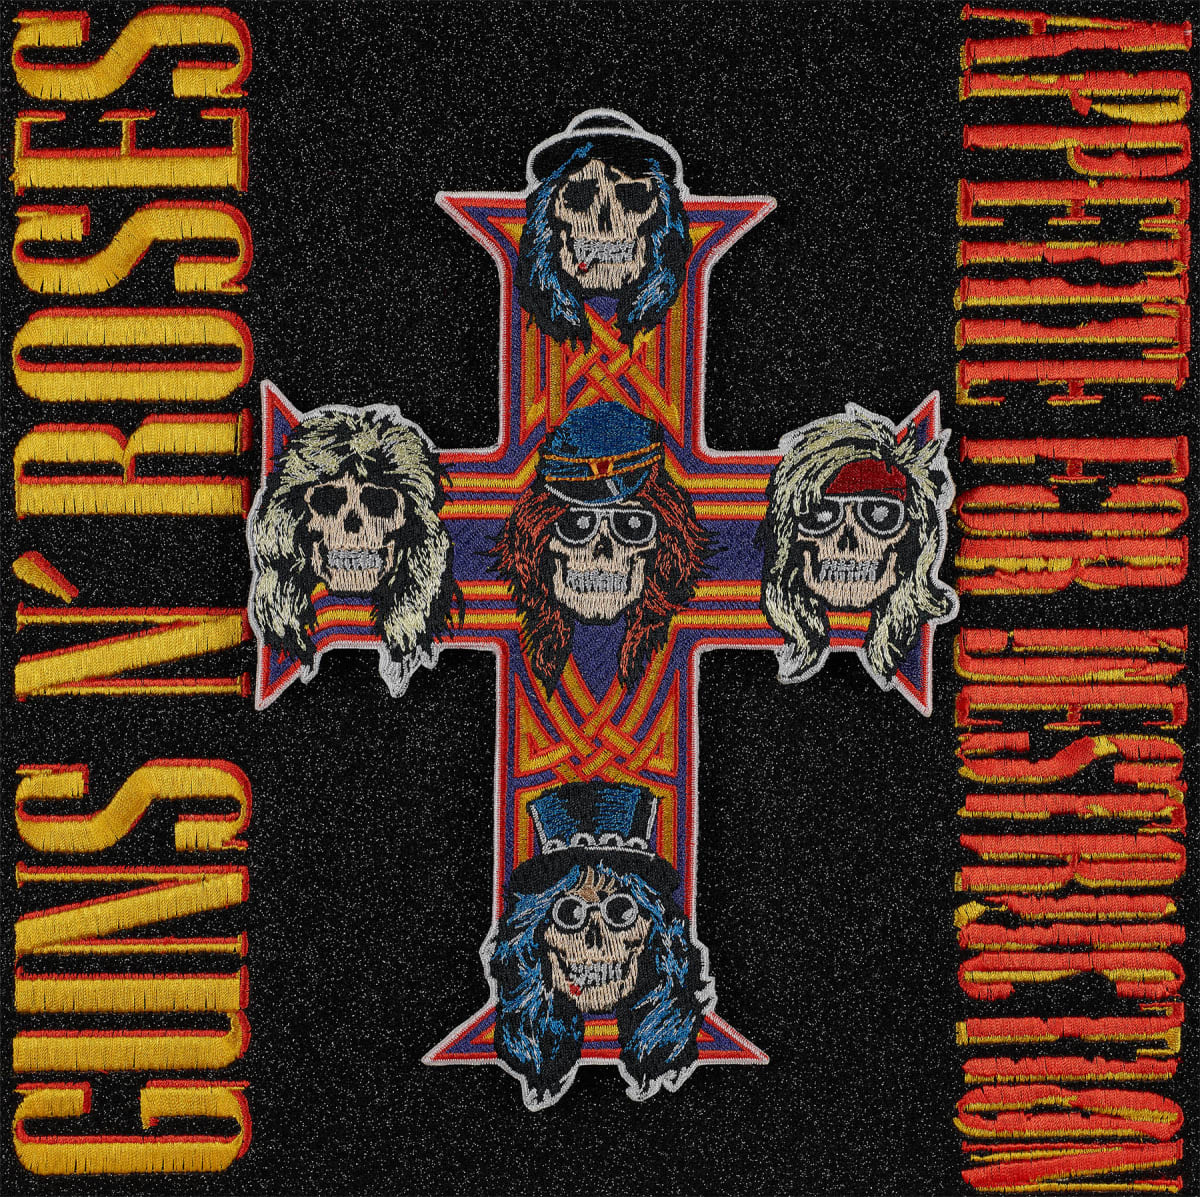 Stephen Wilson, Appetite for Destruction, Guns N' Roses , 2019